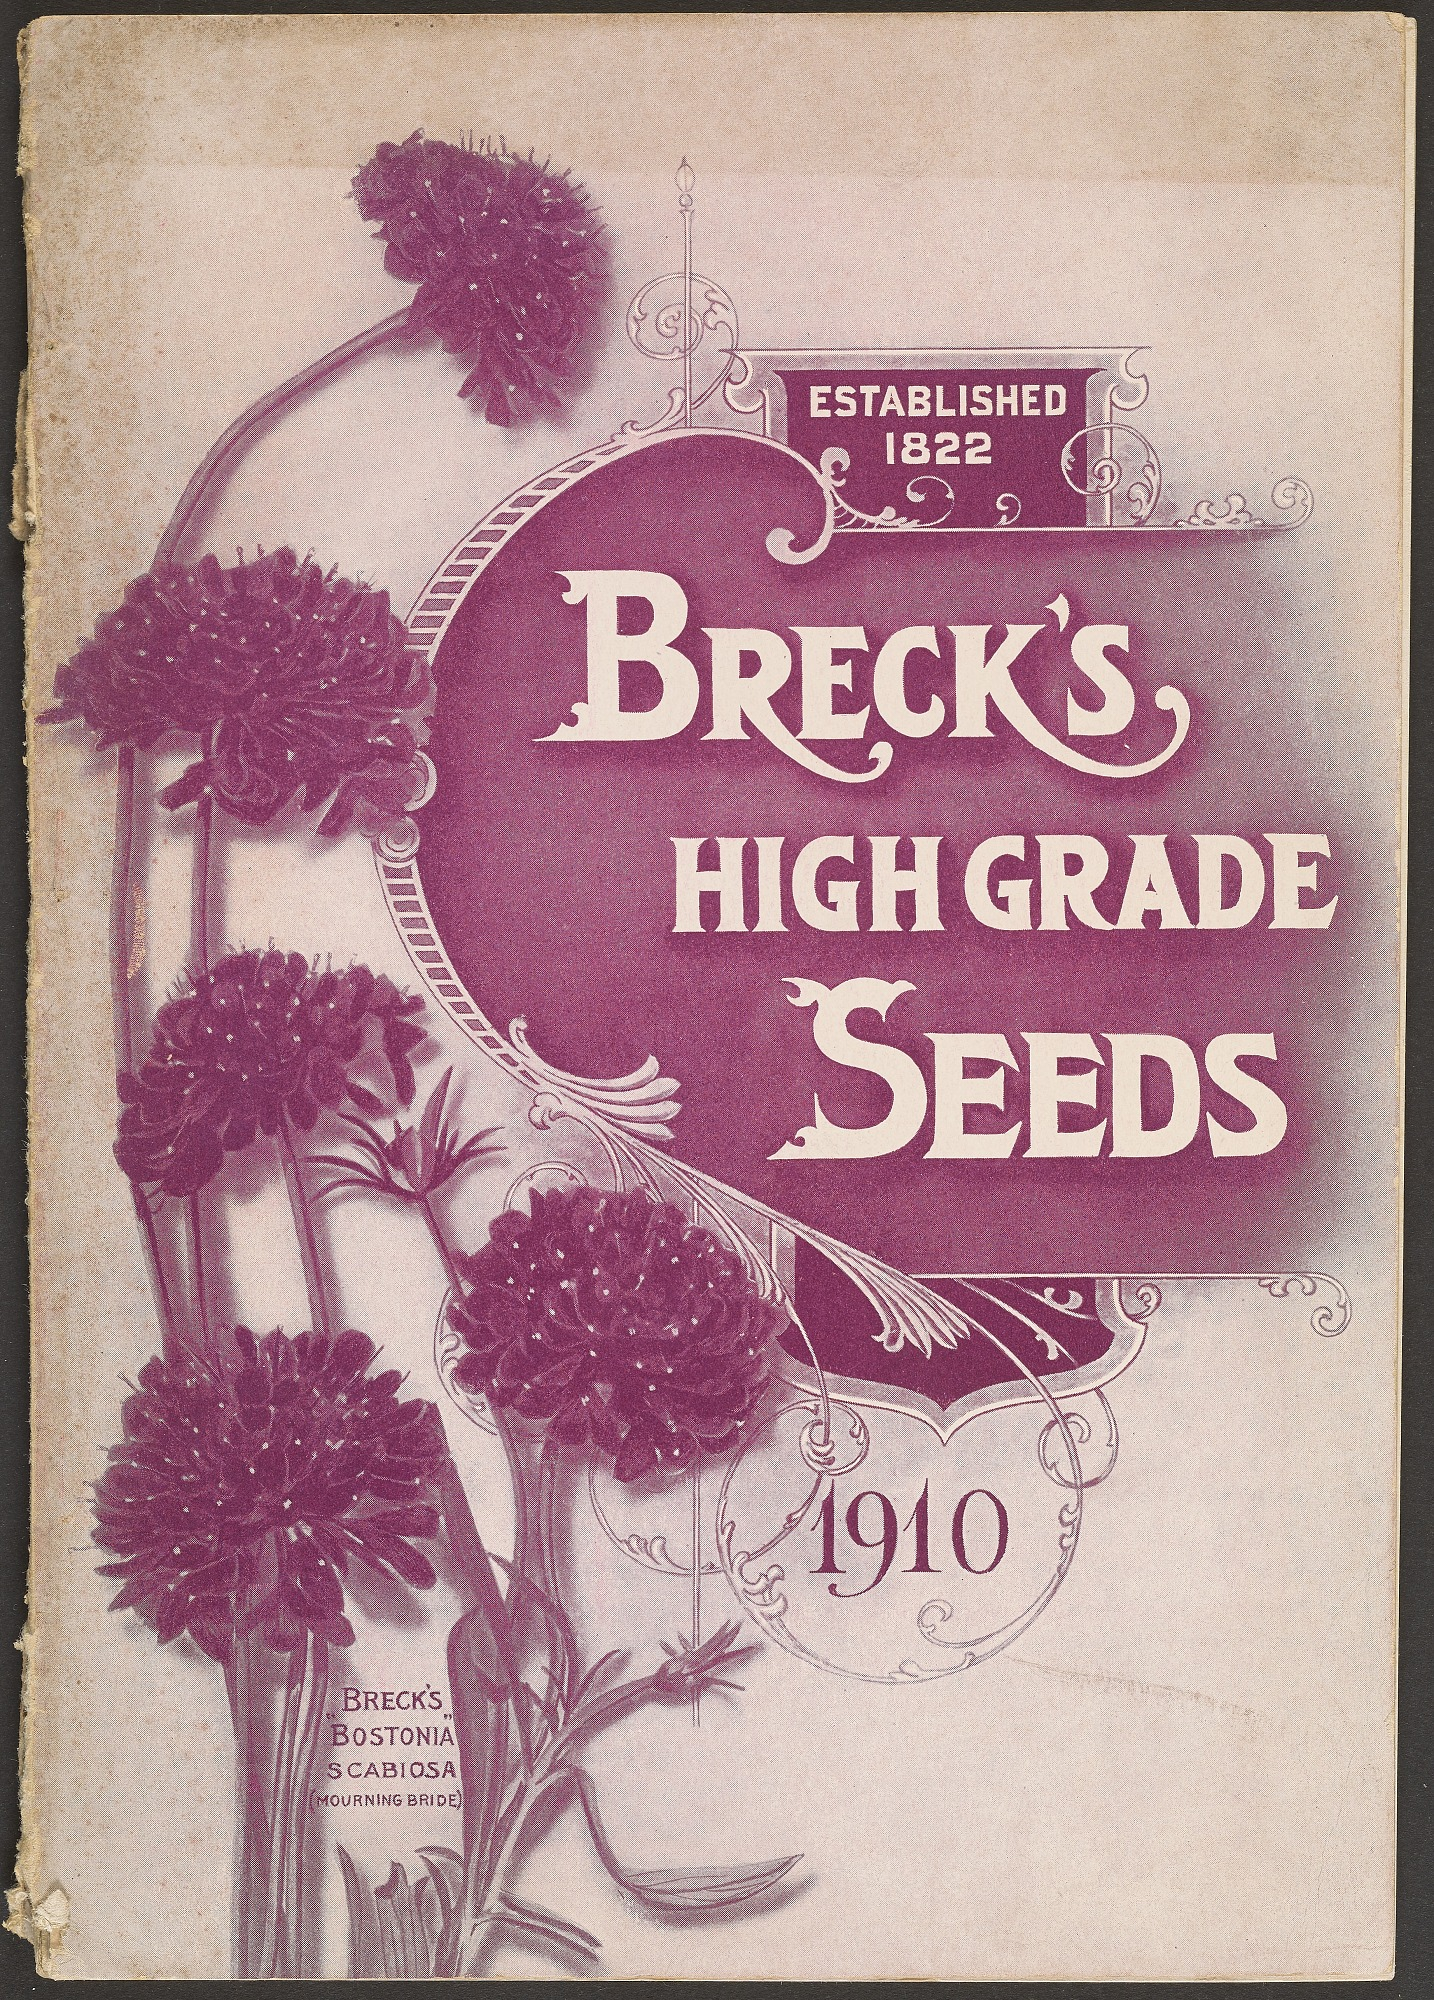 Joseph Breck & Sons Corporation, Breck's High Grade Seeds, 1910